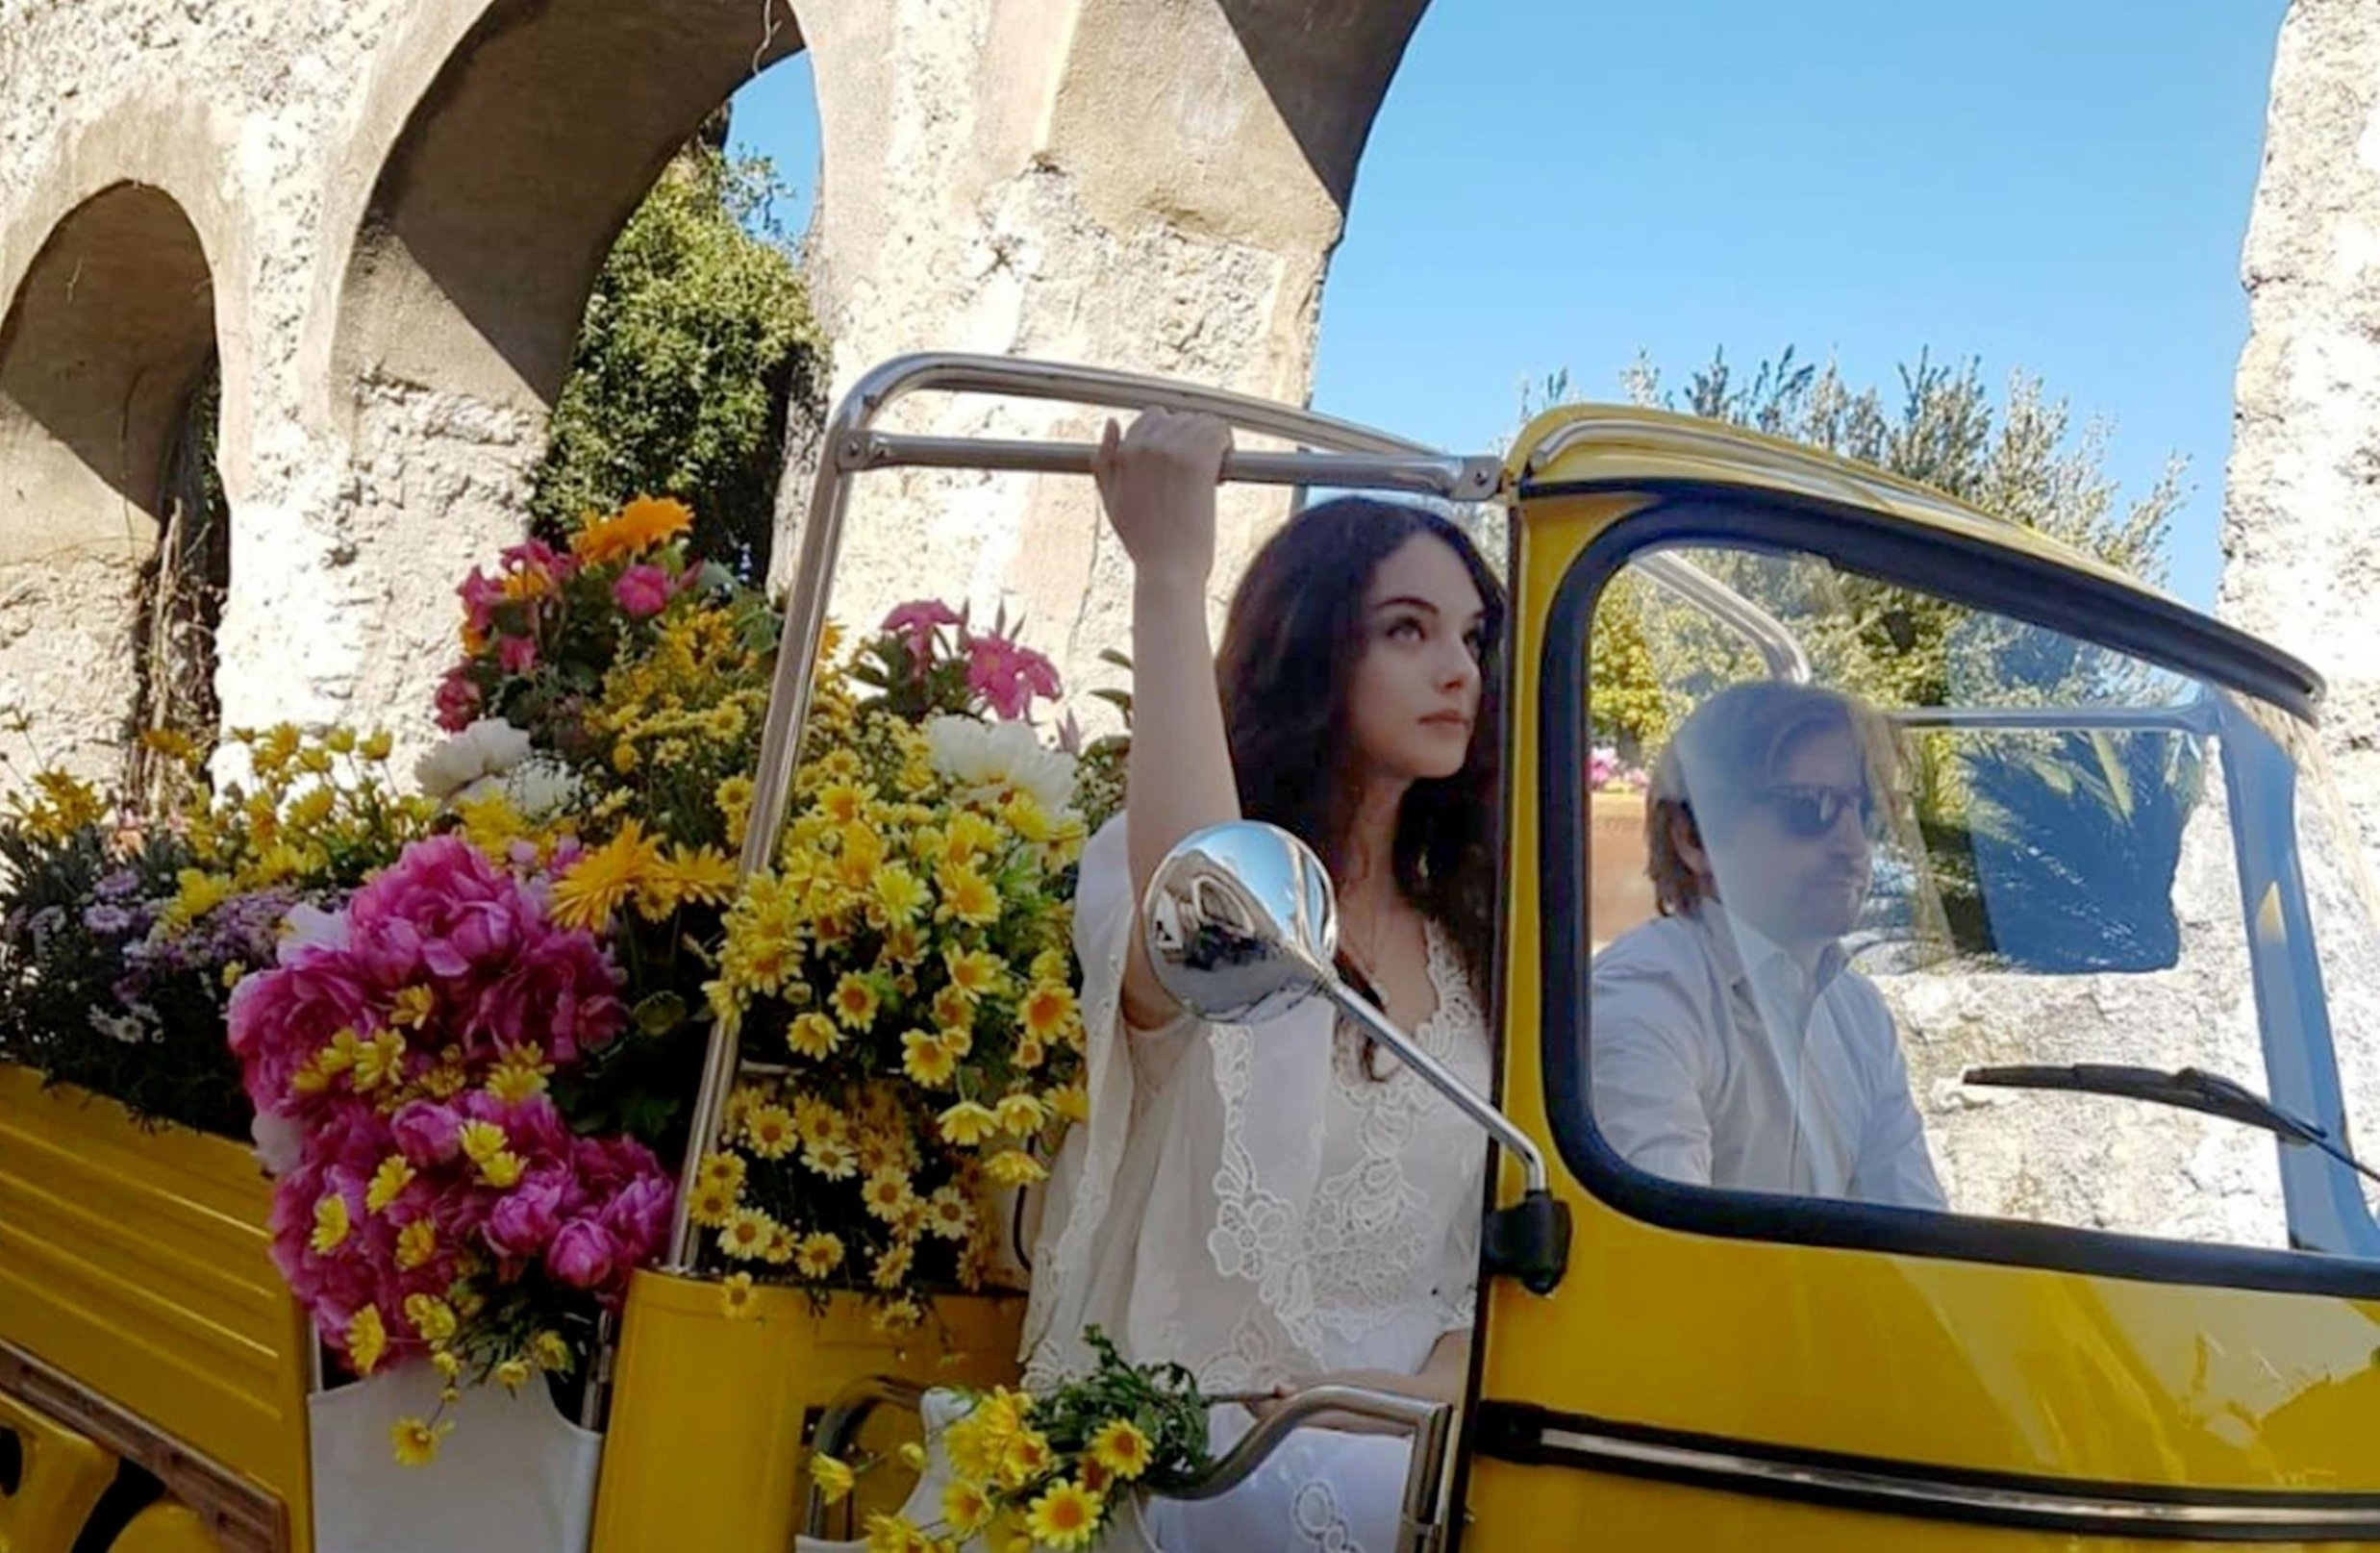 BGUK_1544546 - ** RIGHTS: WORLDWIDE EXCEPT IN ITALY ** Ravello, ITALY  - *EXCLUSIVE*  - The daughter of Vincent Cassel and Monica Bellucci fourteen years old model Deva Cassel is the face of the new perfume